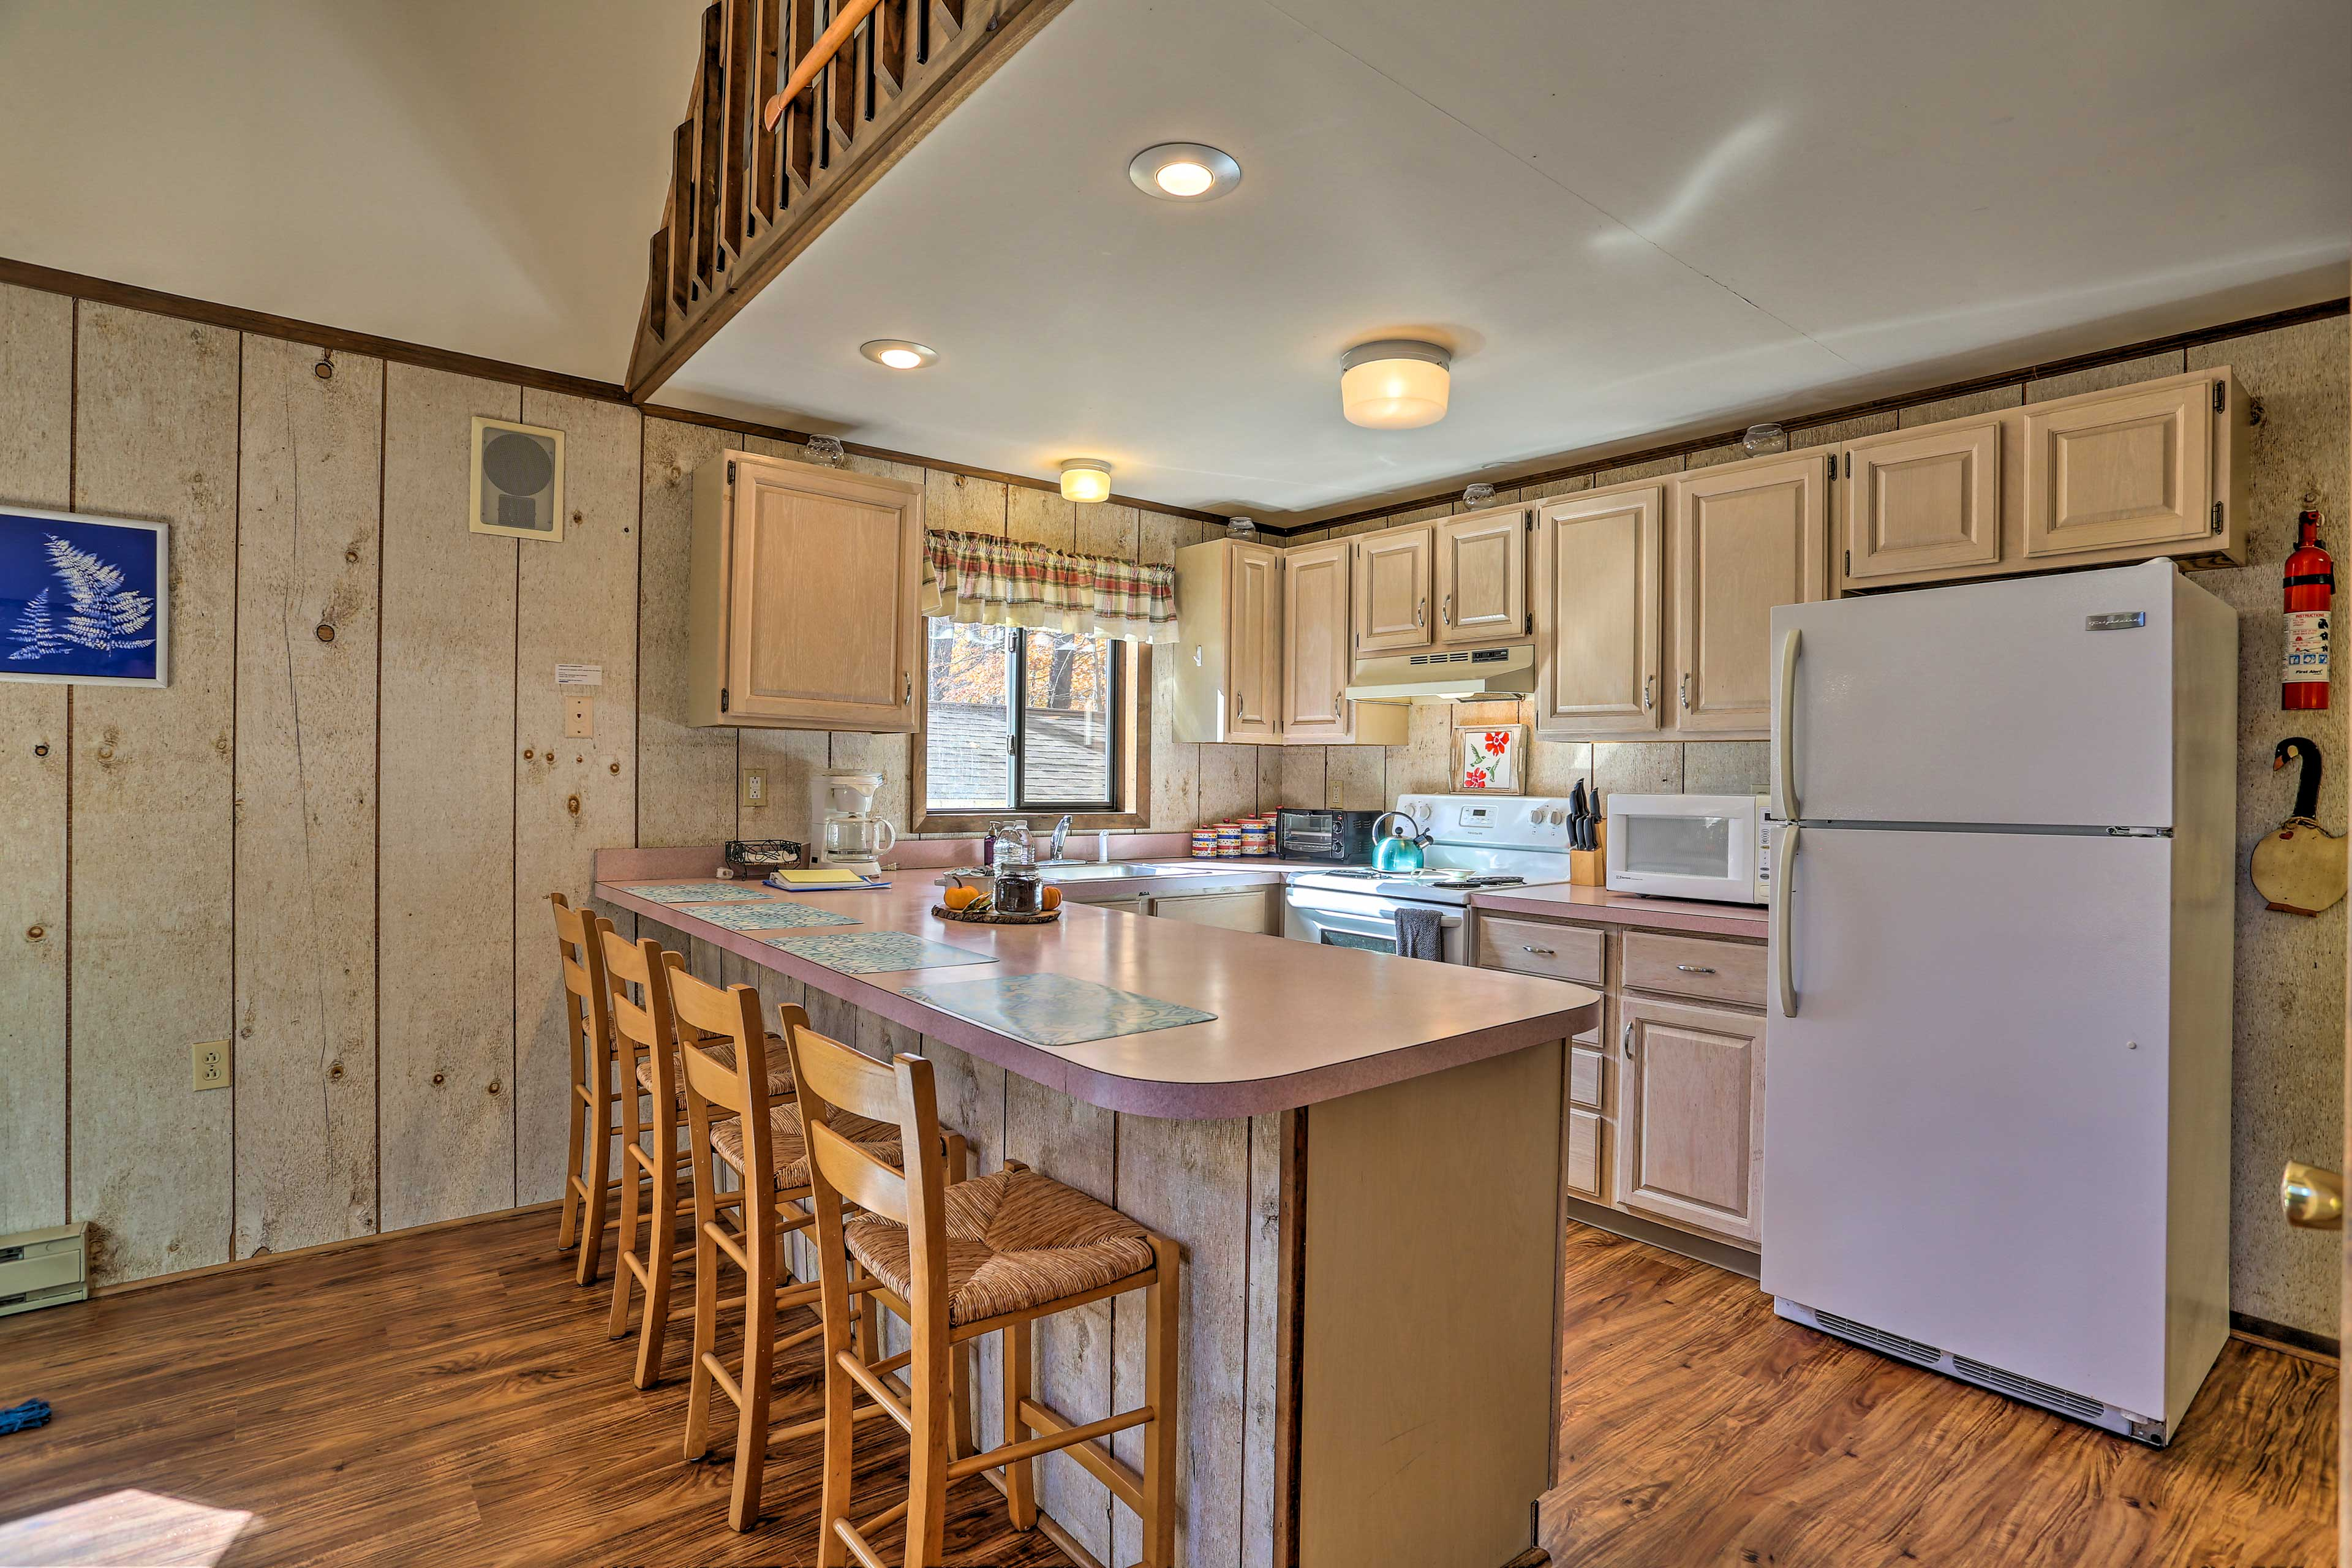 The living area leads into the fully equipped kitchen.